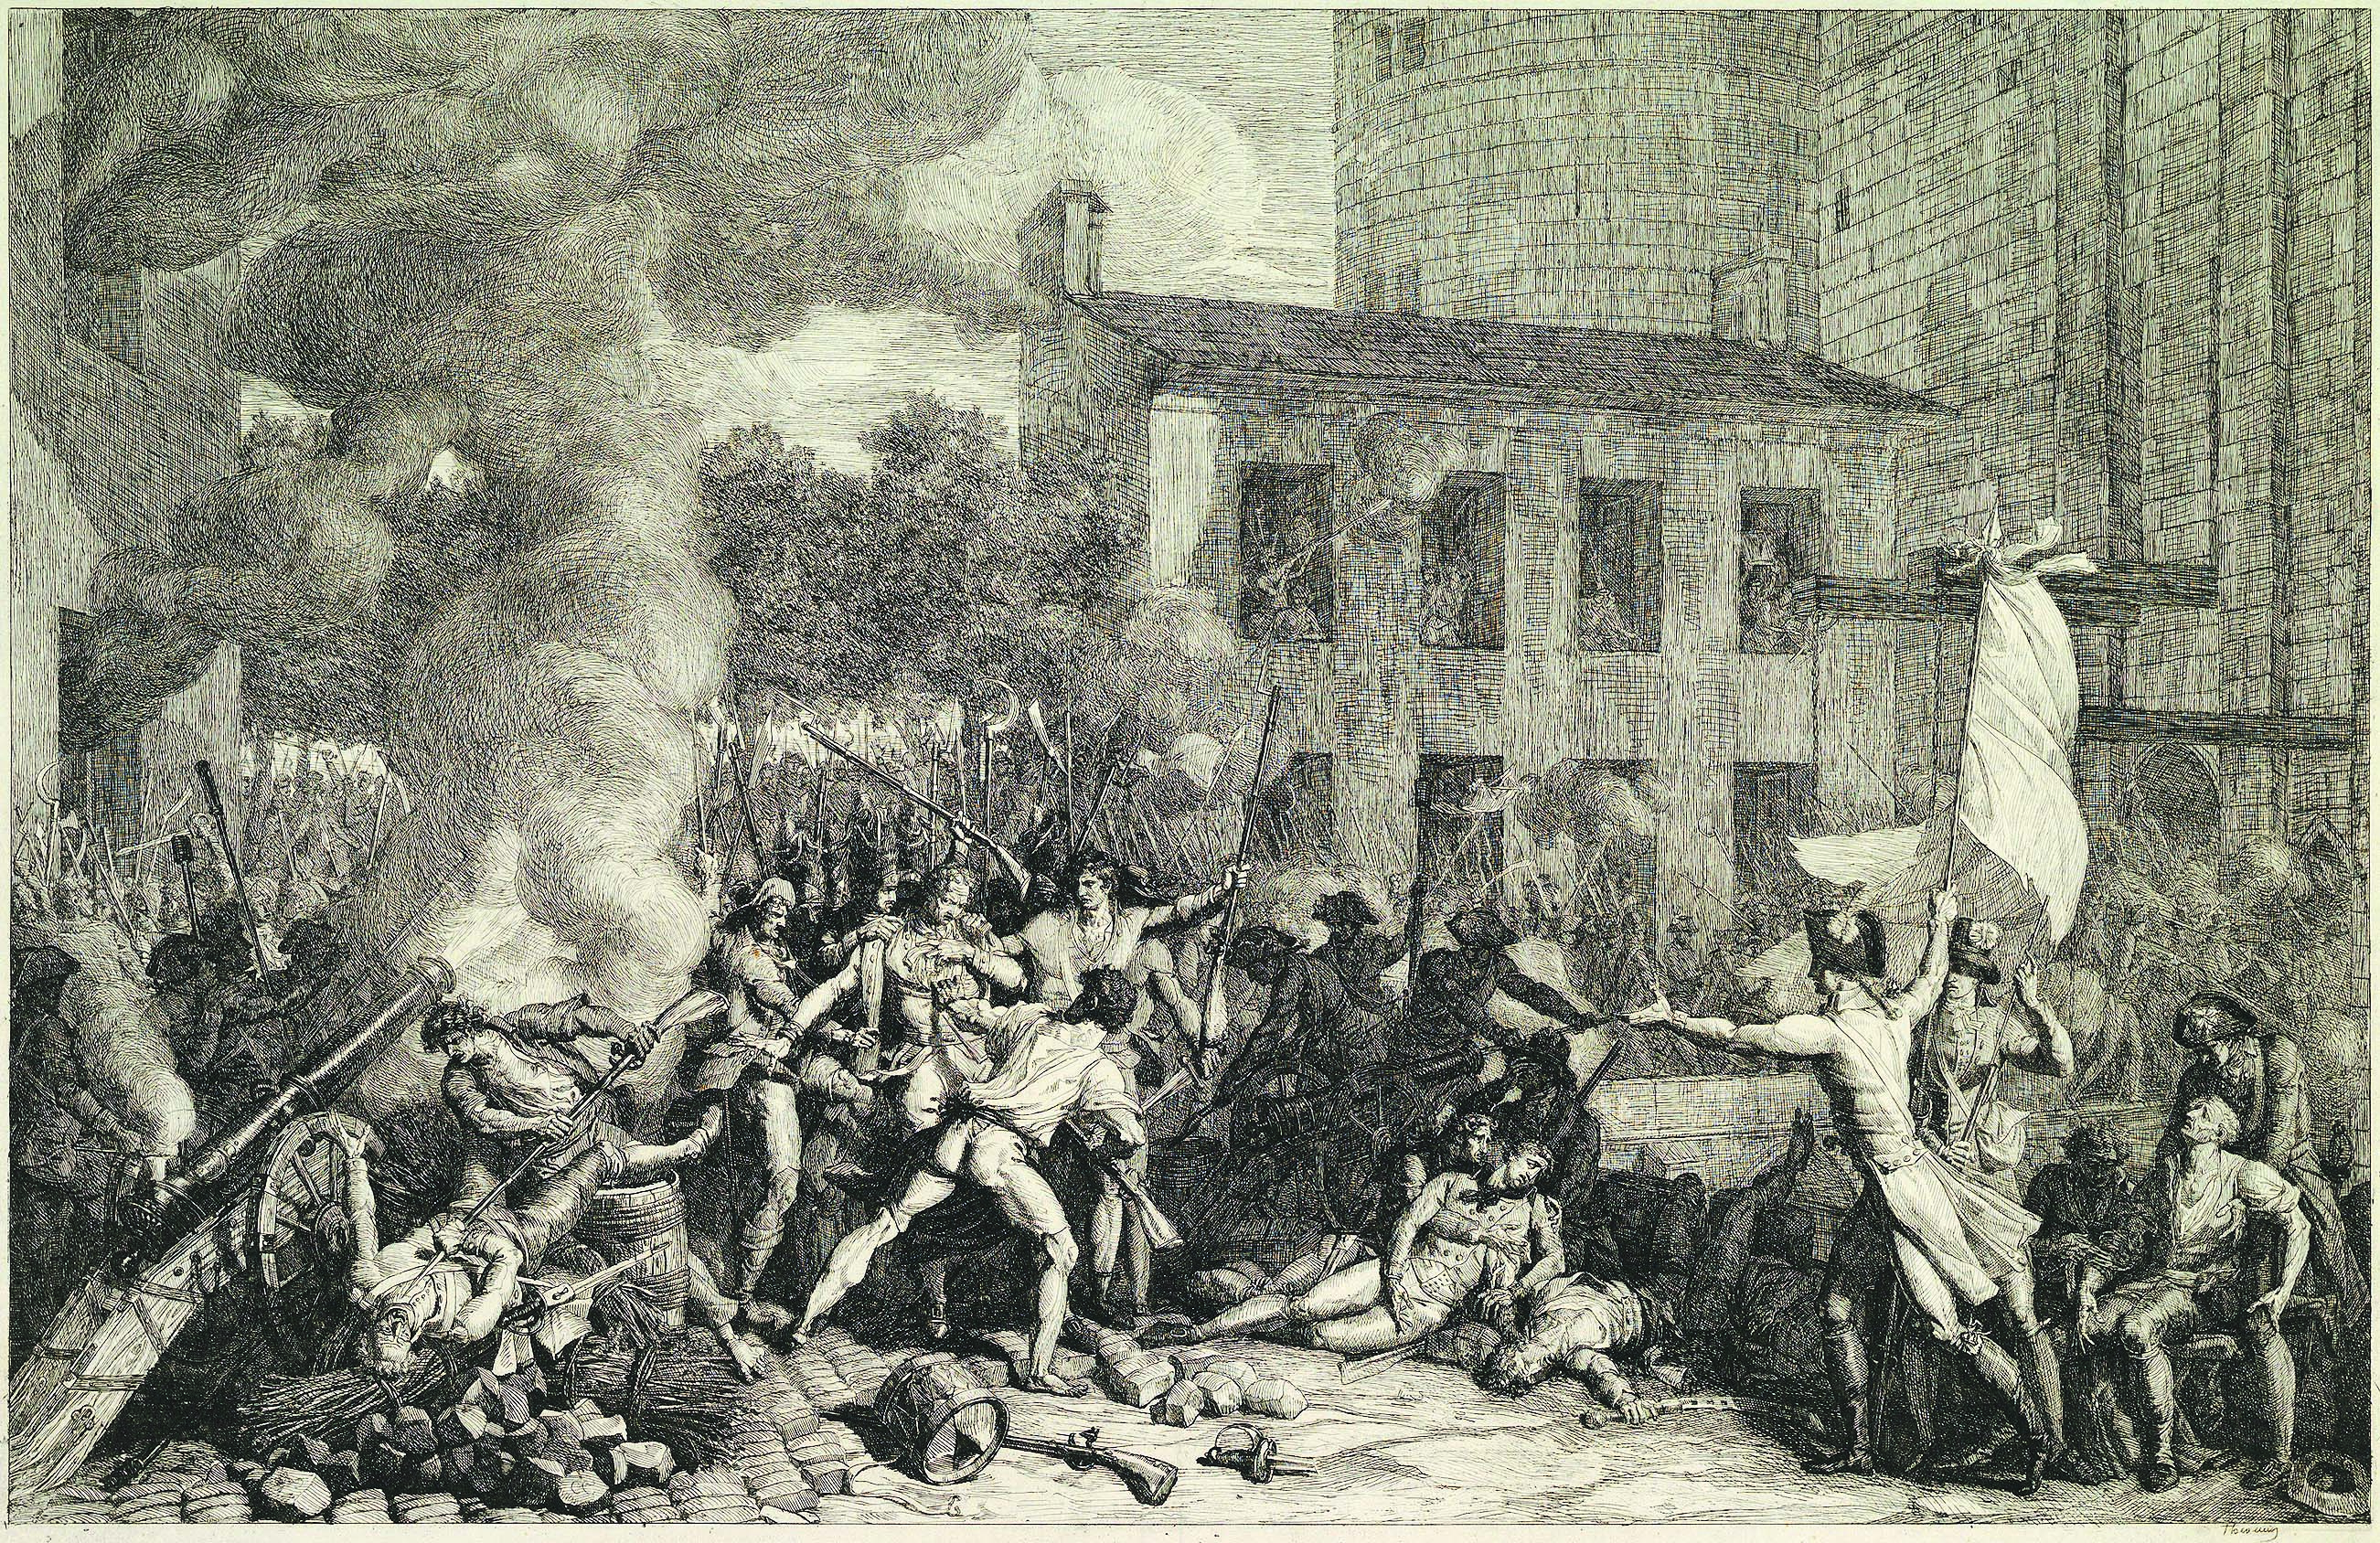 Charles_Thevenin,_The_Storming_of_the_Bastille